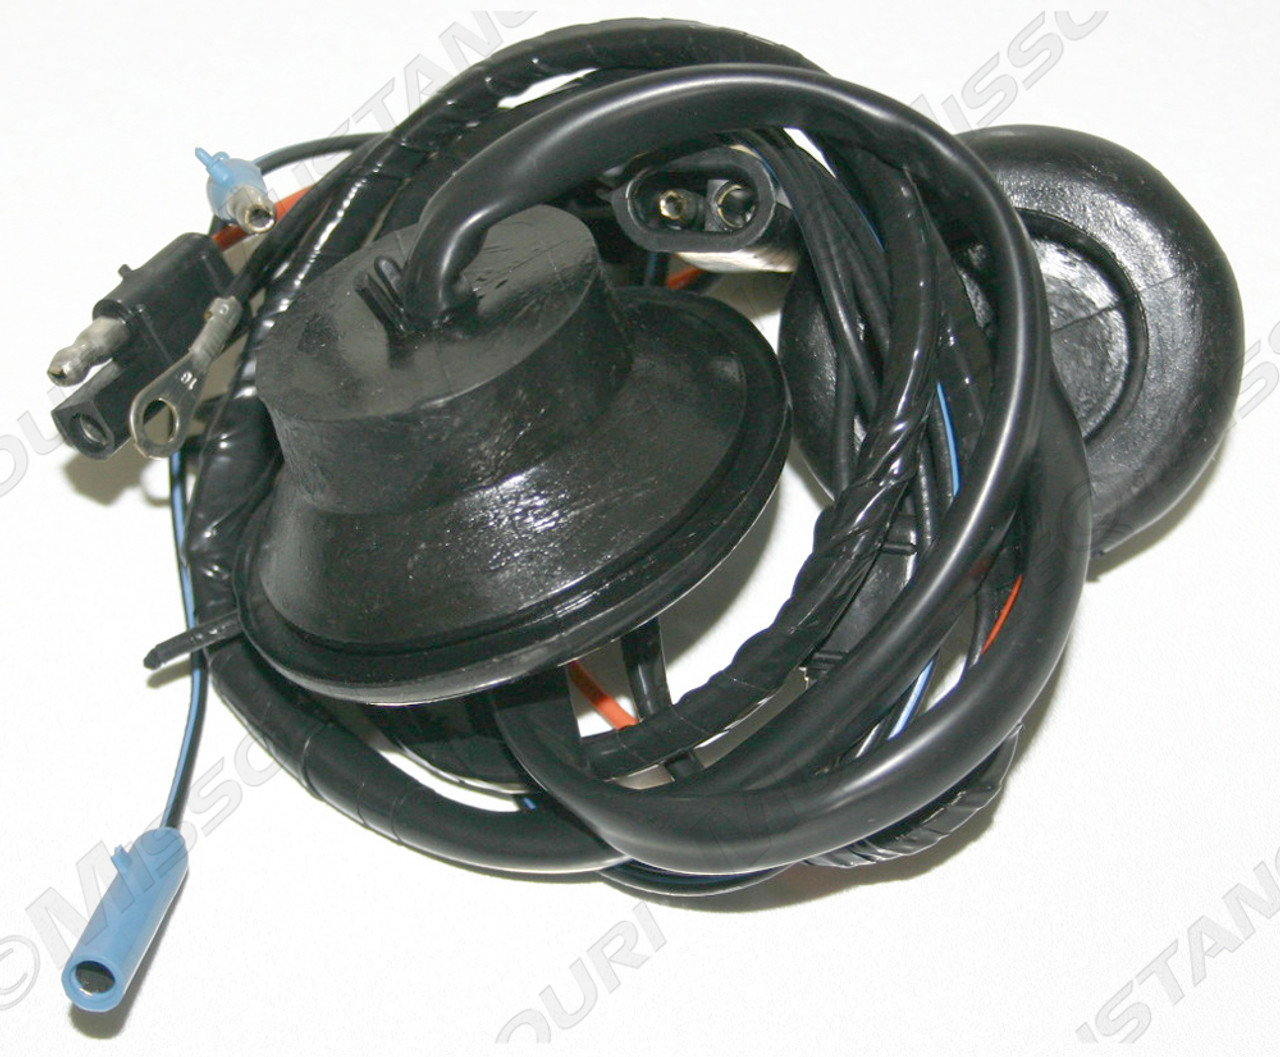 small resolution of 1969 1970 ford mustang door light wiring with speakers